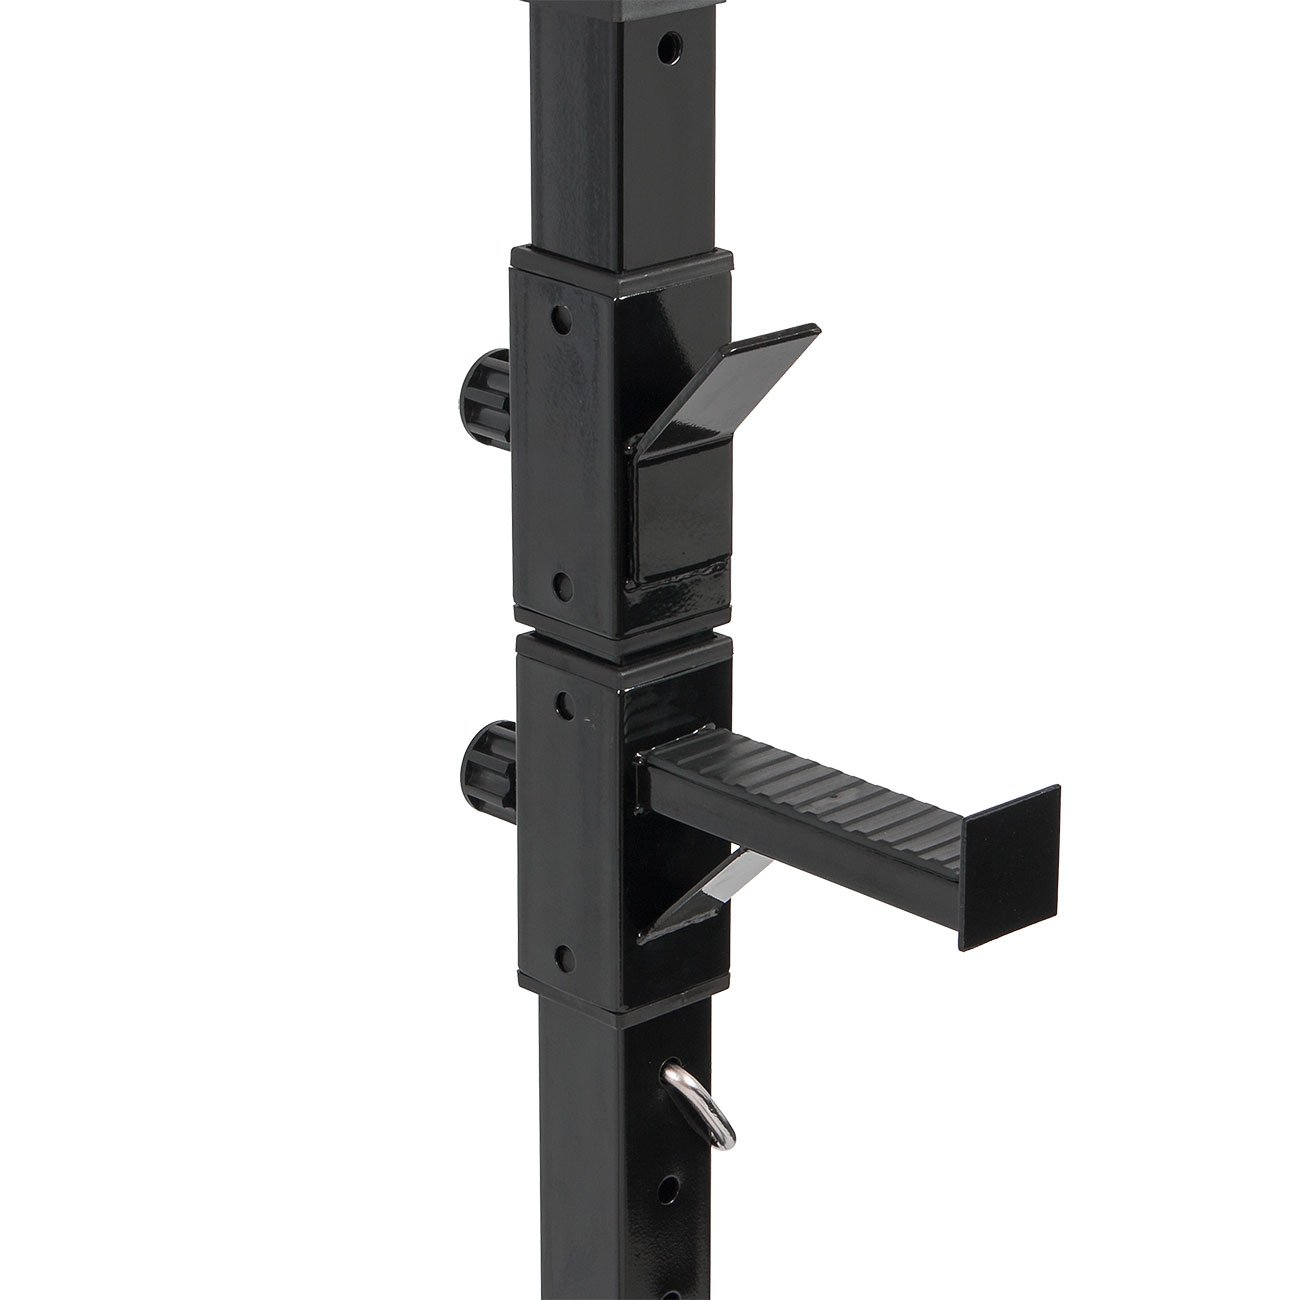 Akonza Pair of Adjustable Standard Solid Steel Power Squat Stands Barbell Free Press Bench -Black by Akonza (Image #2)